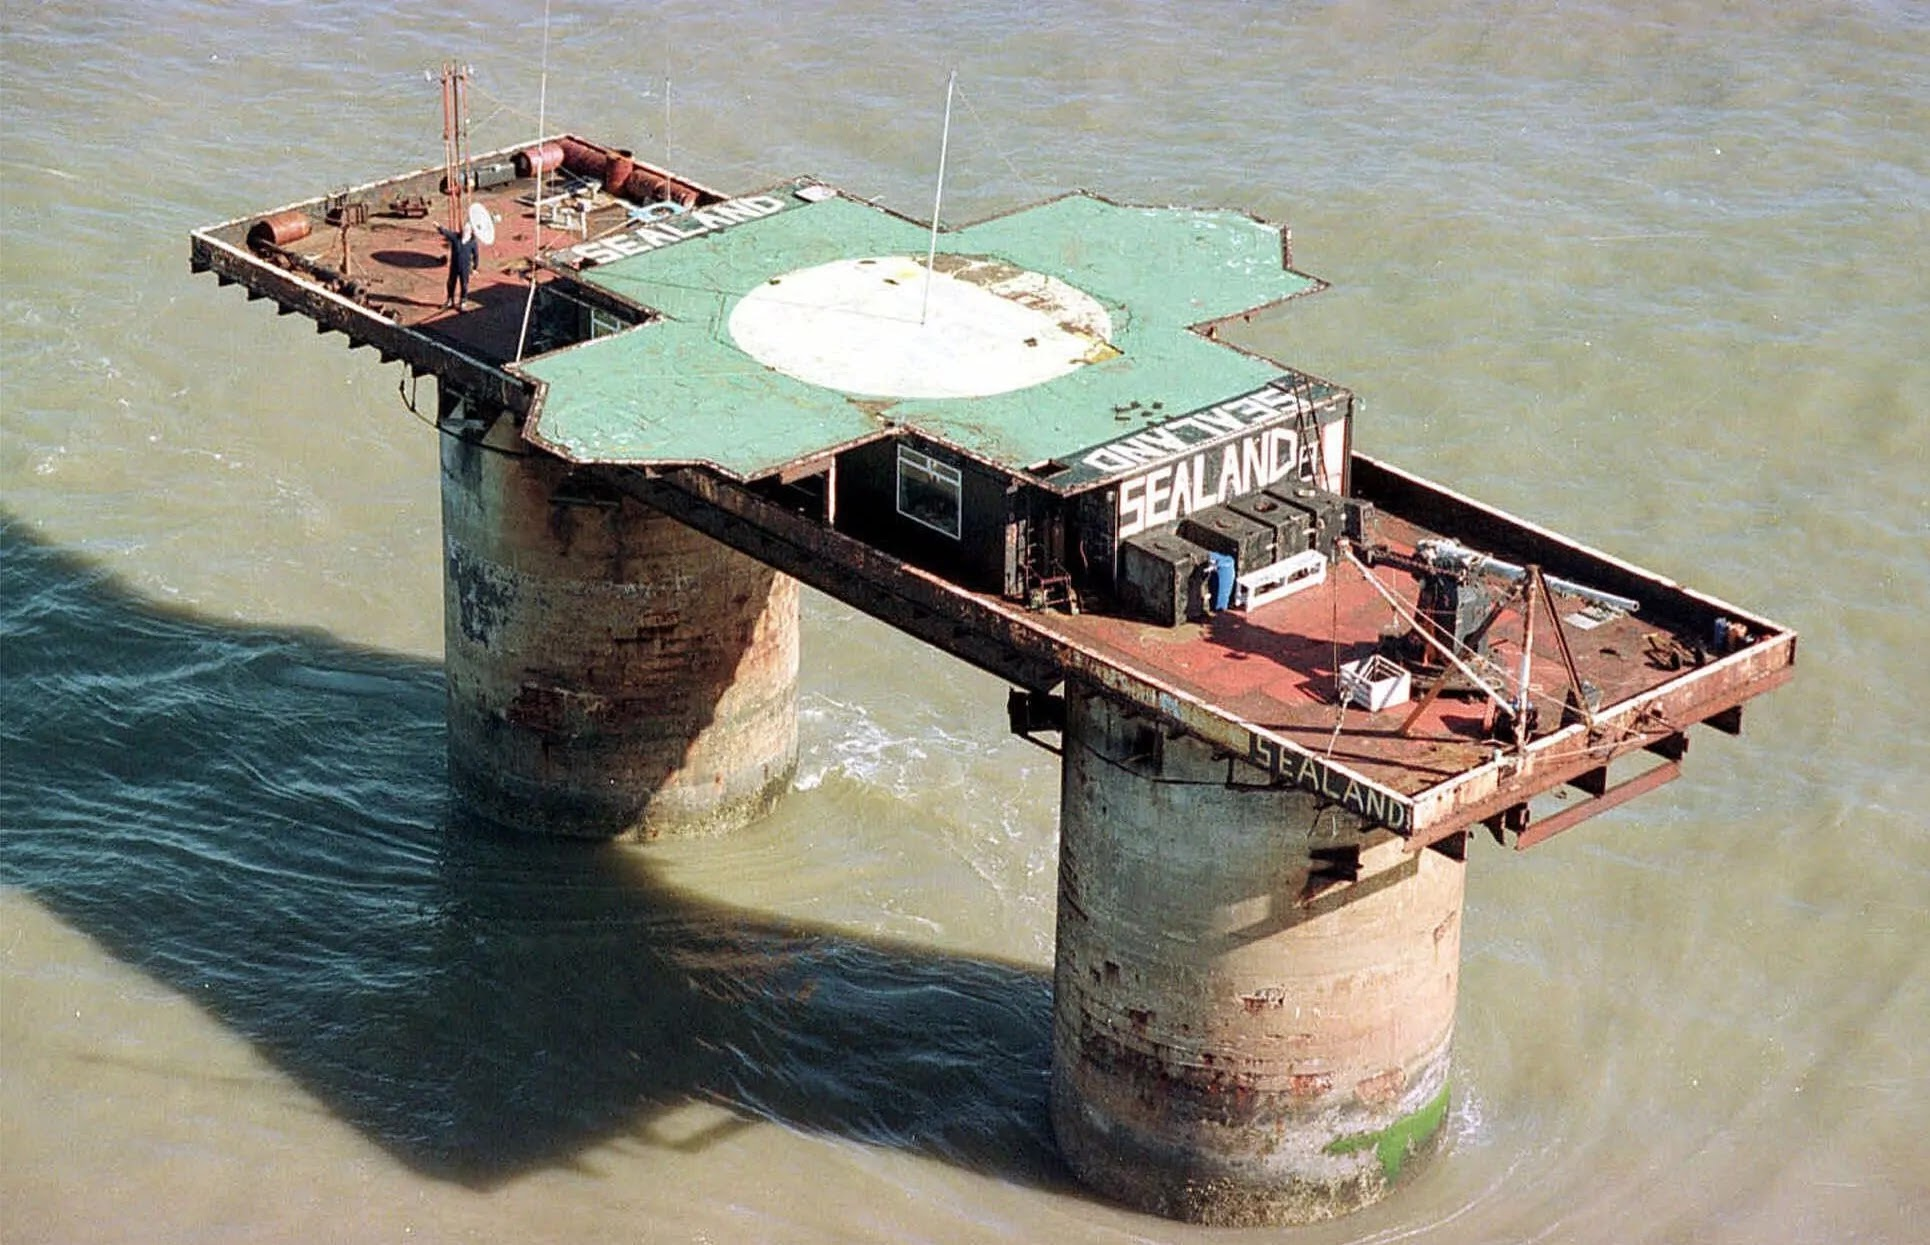 This Is The World's Smallest 'Nation', A Tiny Man-Made Platform Off The Coast Of The UK